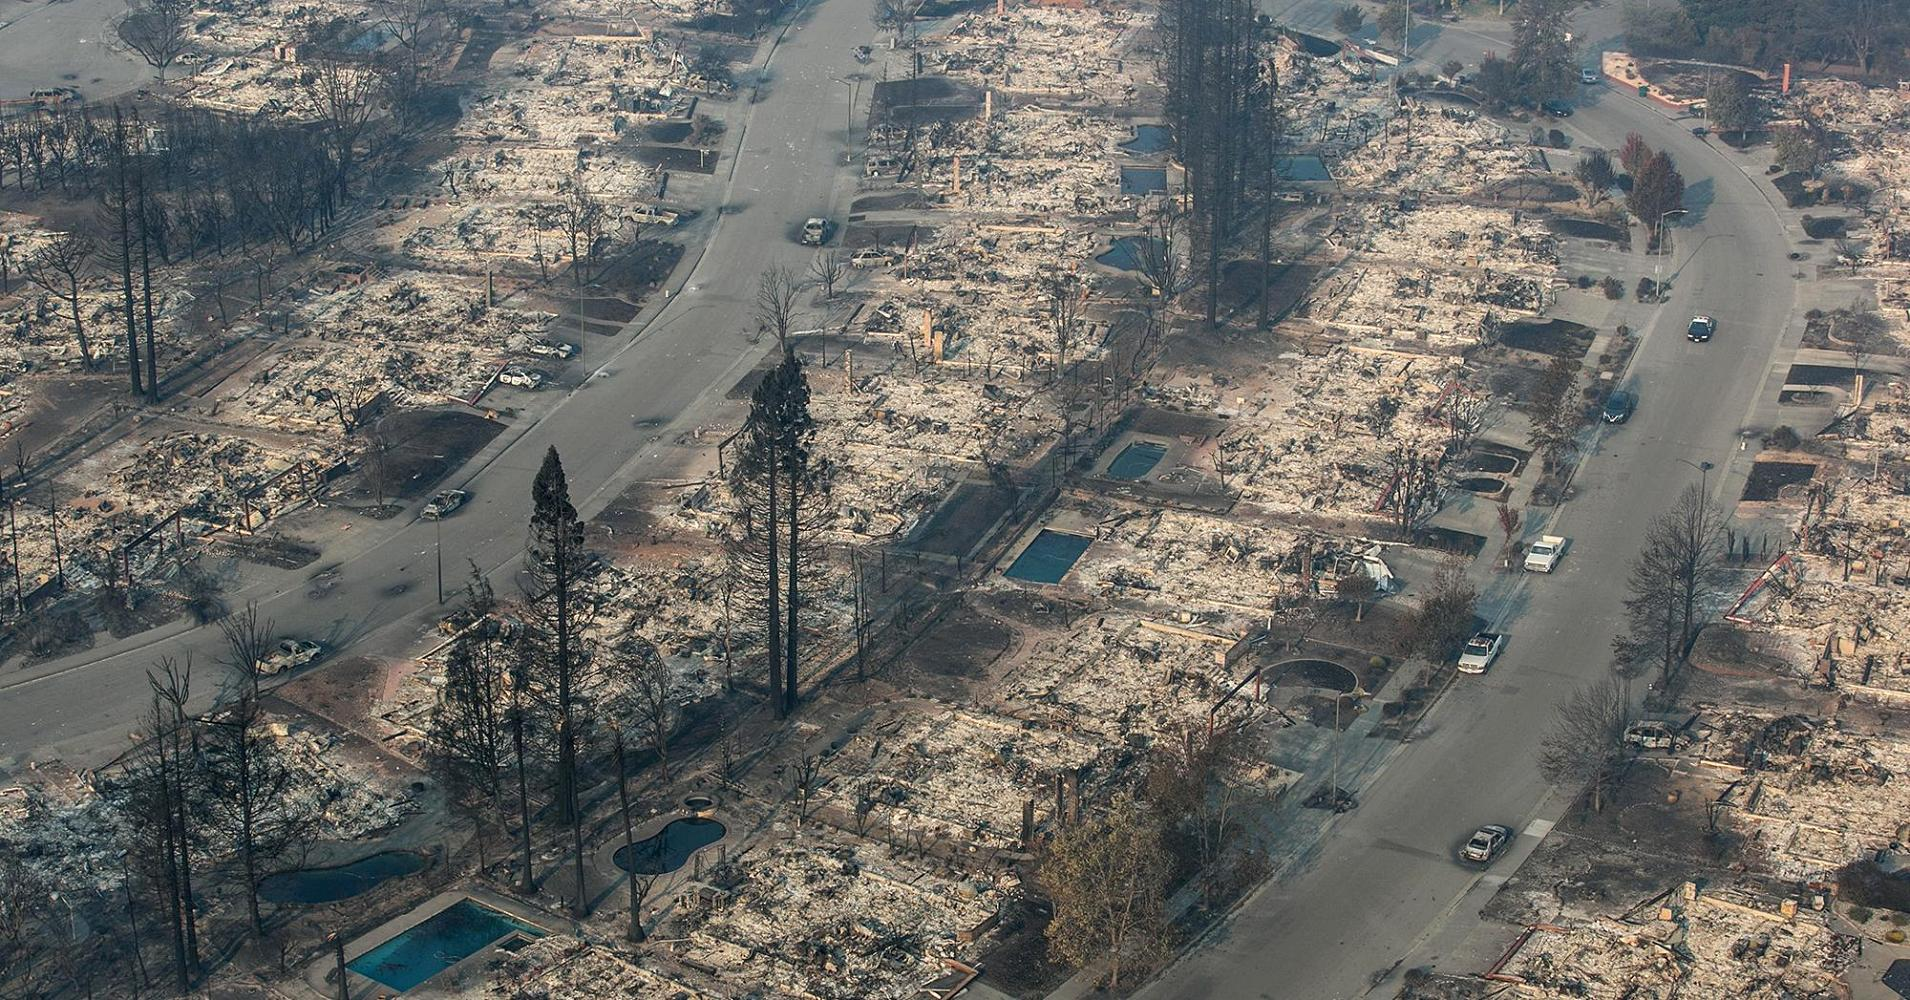 Damage from California wildfires